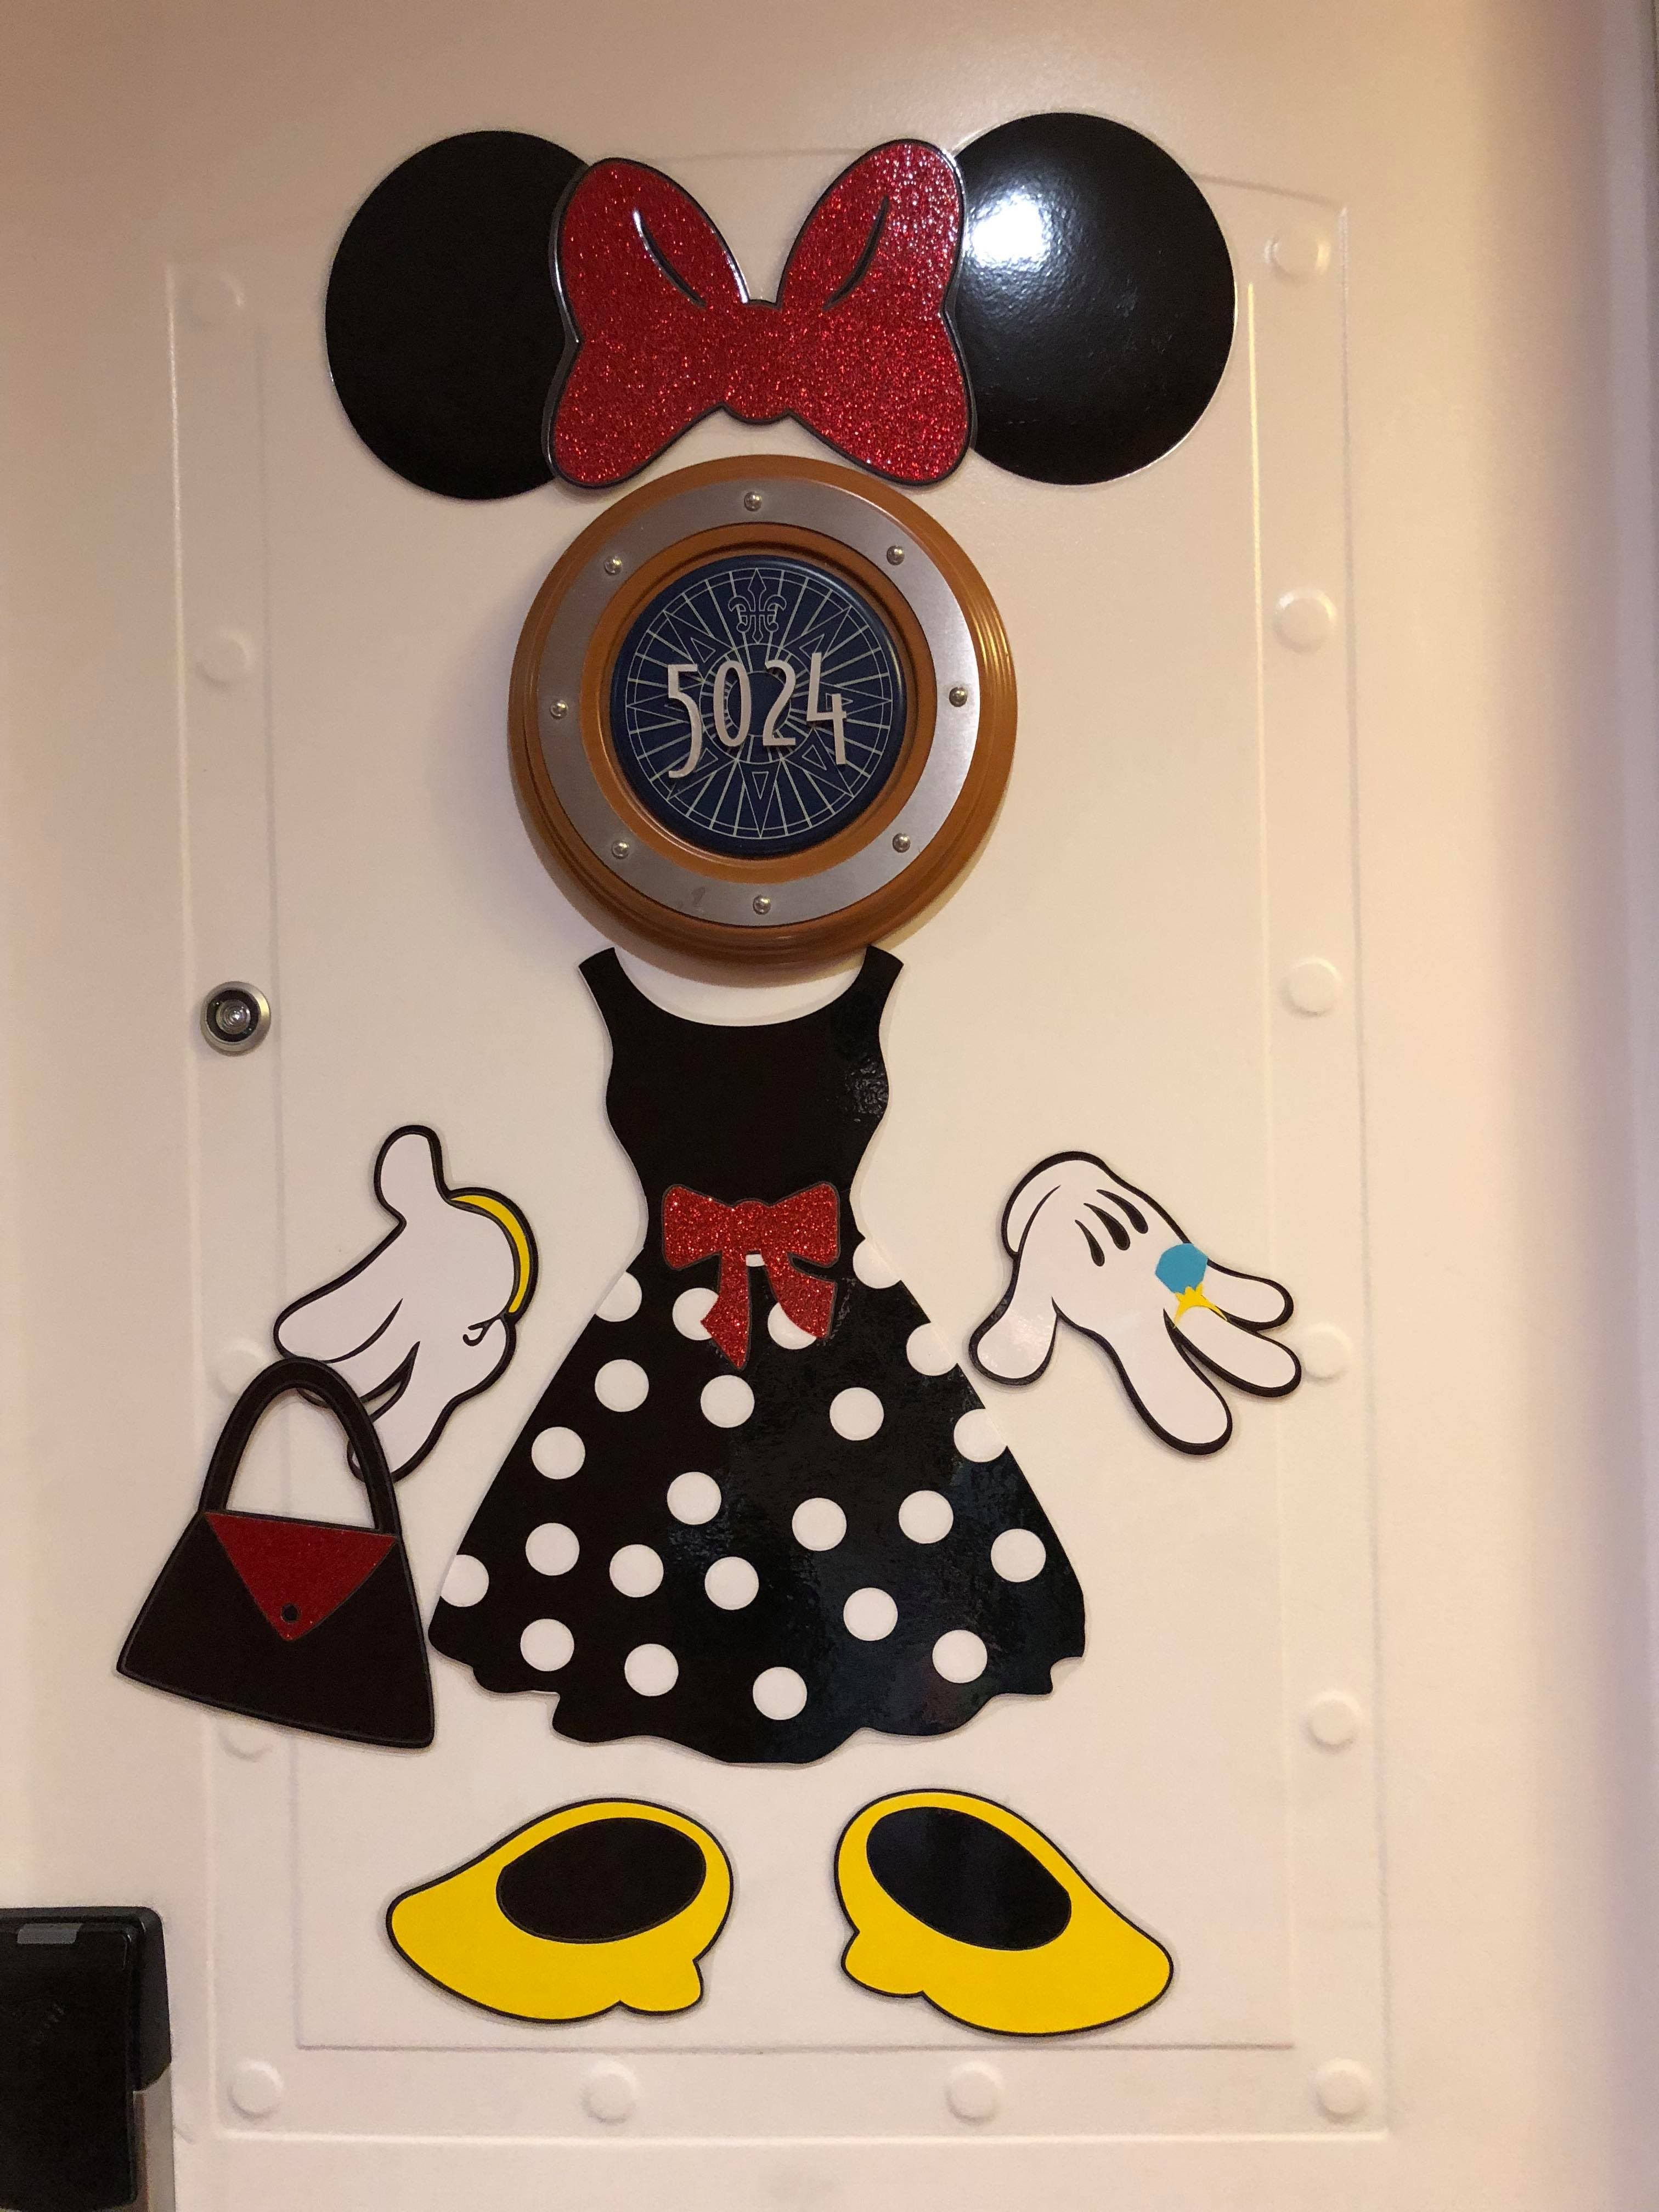 Decorate Your Cruise Door In Style With These Disney Cruise Door Magnets